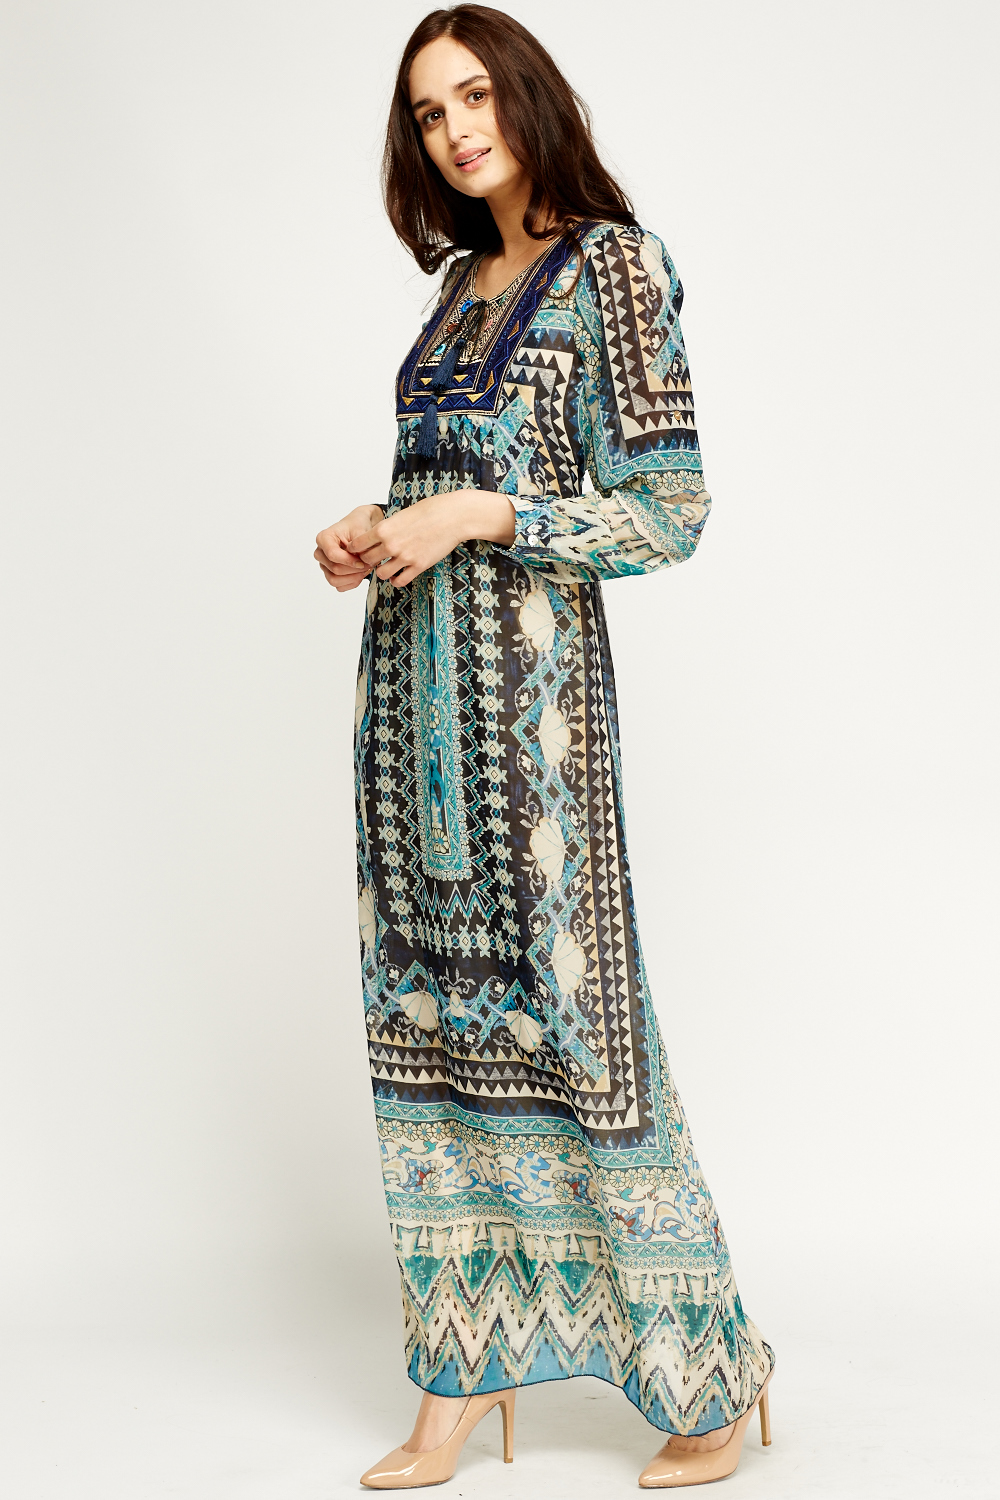 Mixed Print Sheer Maxi Dress Just 163 5